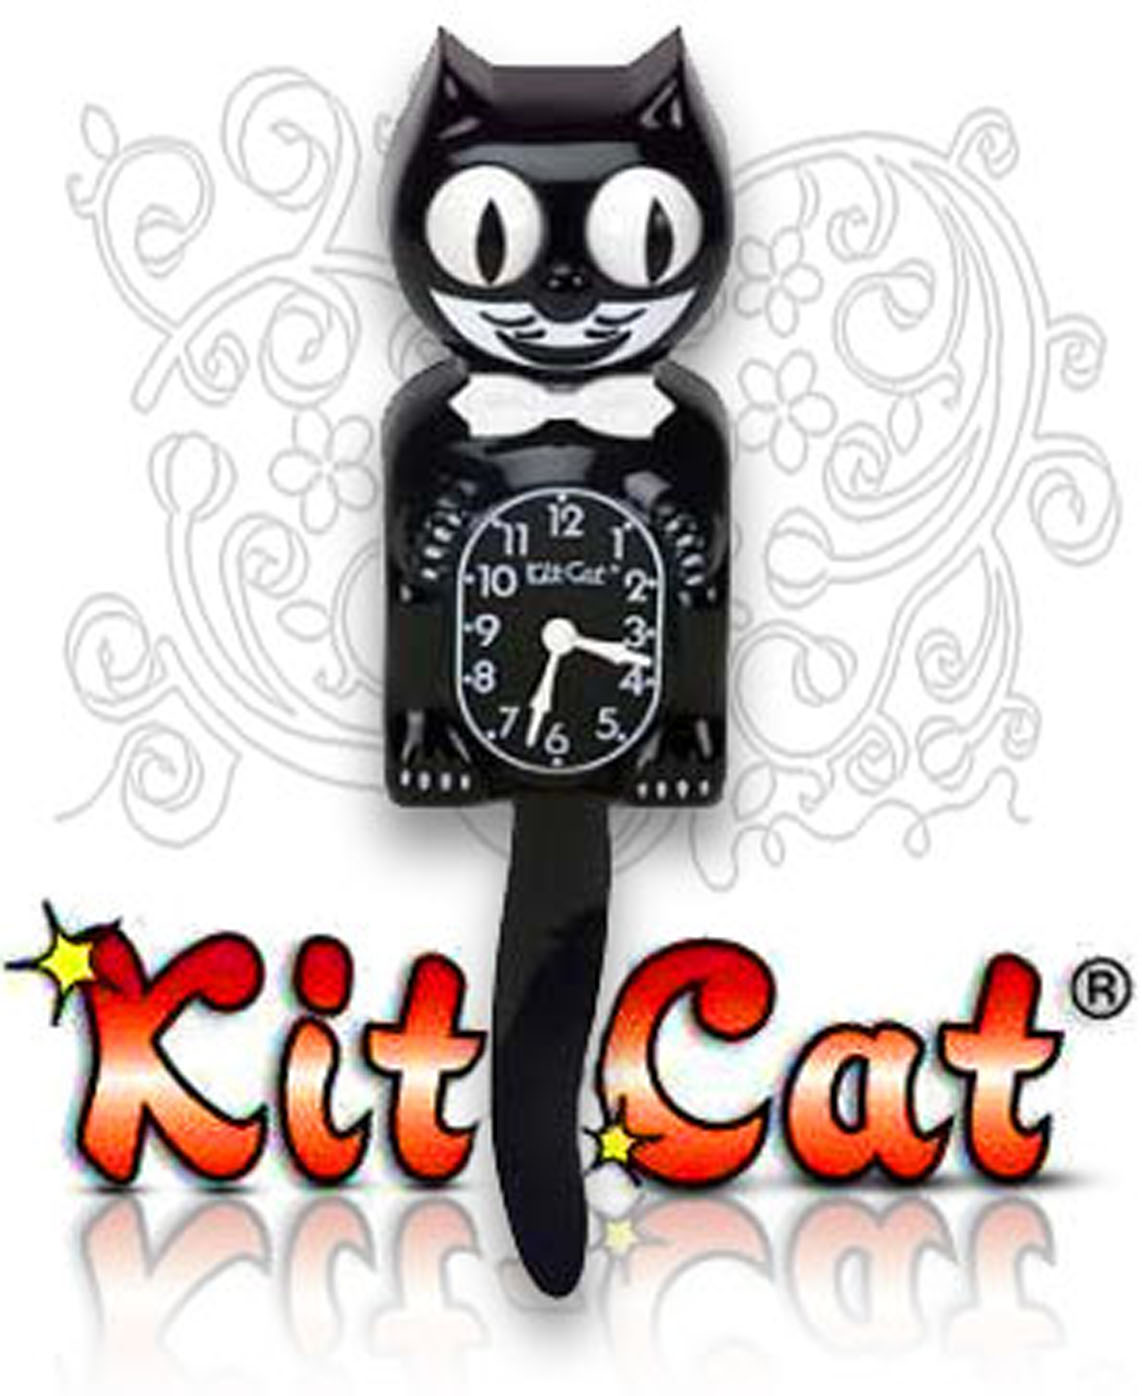 Kit kat wall clock gallery home wall decoration ideas cat wall clock with moving eyes gallery home wall decoration ideas kit kat wall clock choice amipublicfo Gallery